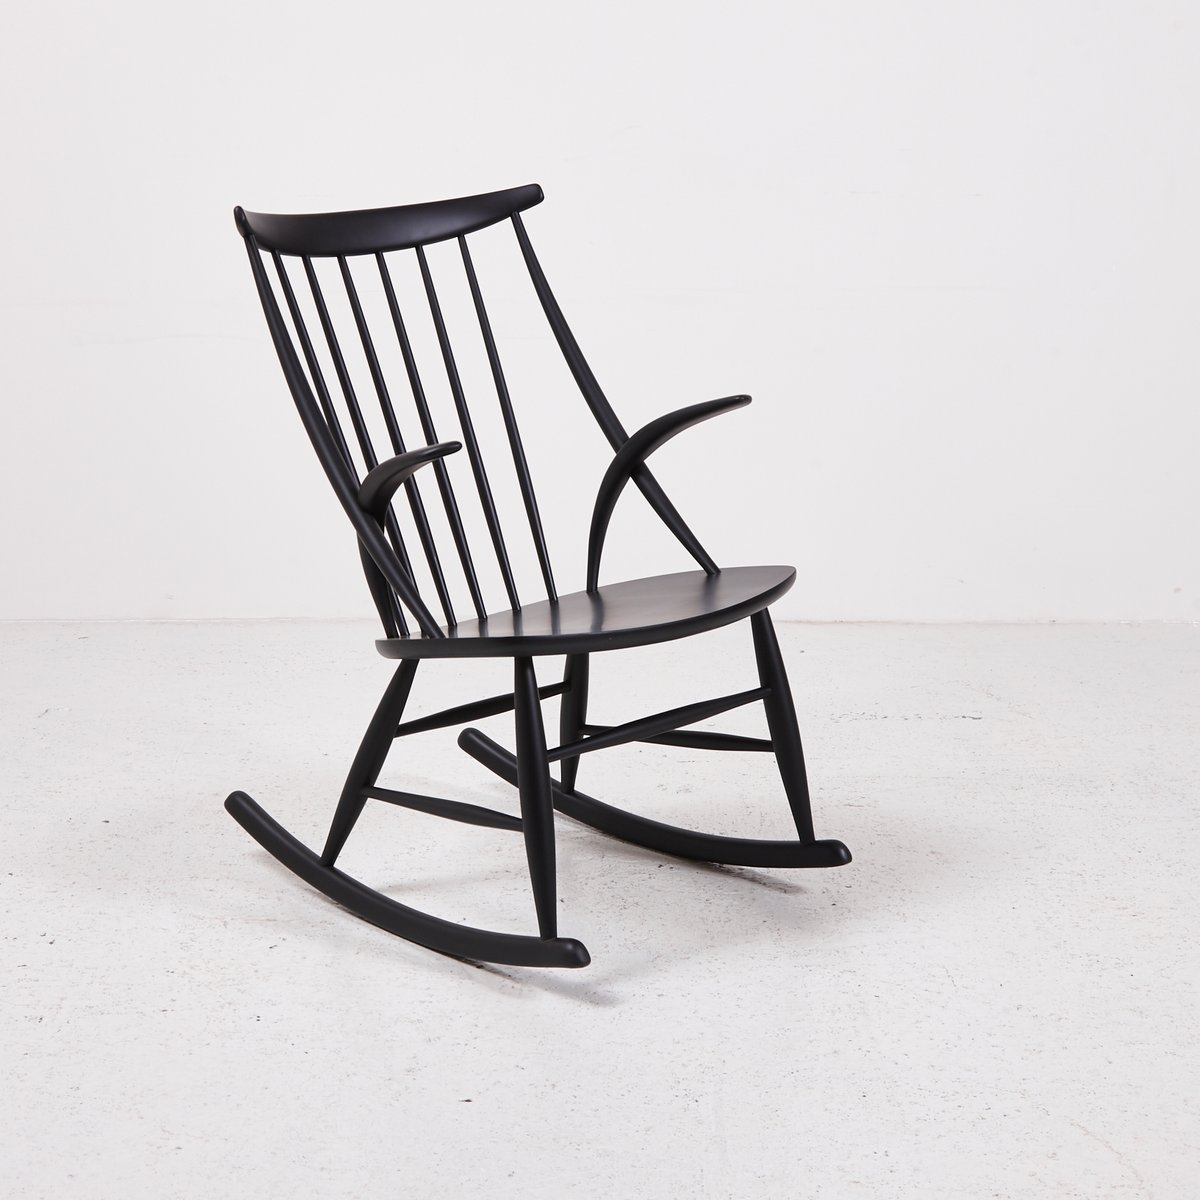 Iw3 Rocking Chair By Illum Wikkelso For Eilersen 1958